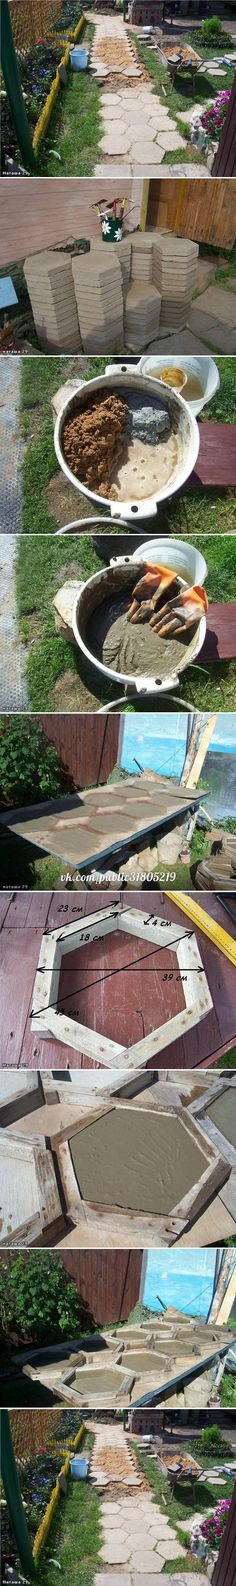 DIY Hexagon Paving Stones